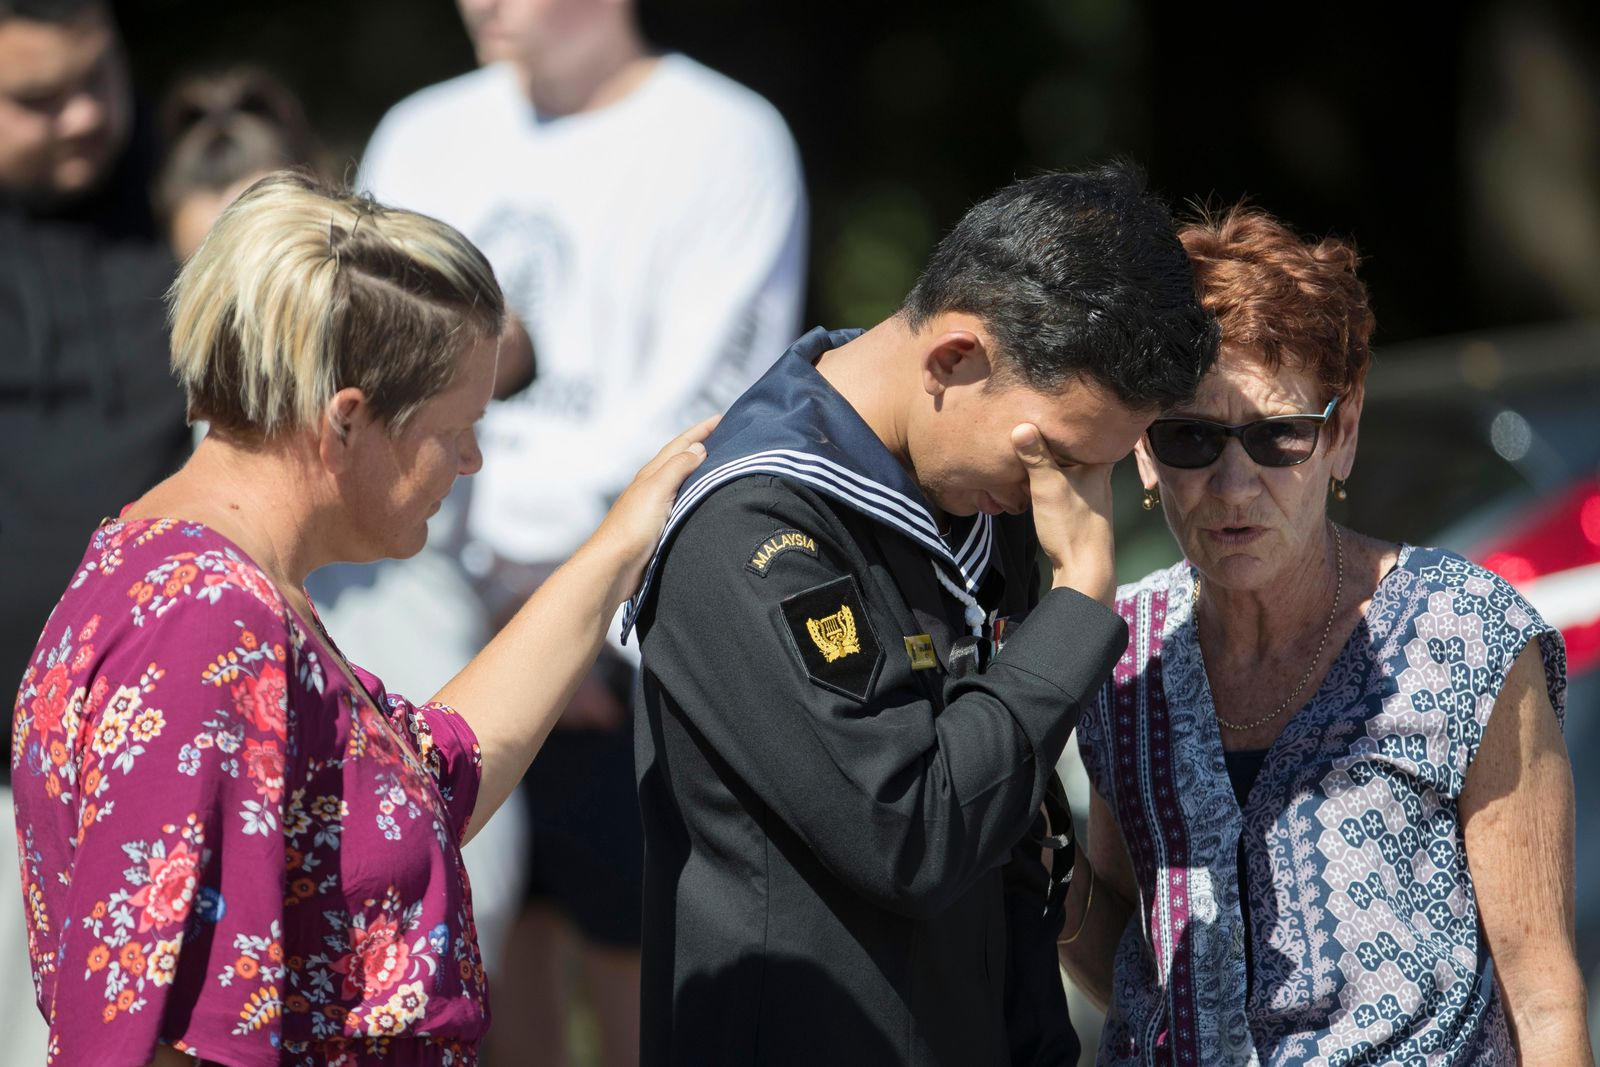 Abdul Iskandar, a sailor of Malaysian Royal Navy, cries after offering flowers outside the Al Noor mosque in Christchurch, New Zealand, Tuesday, March 19, 2019. Christchurch was beginning to return to a semblance of normalcy Tuesday. Streets near the hospital that had been closed for four days reopened to traffic as relatives and friends of Friday's shooting victims continued to stream in from around the world. (AP Photo/Vincent Thian)